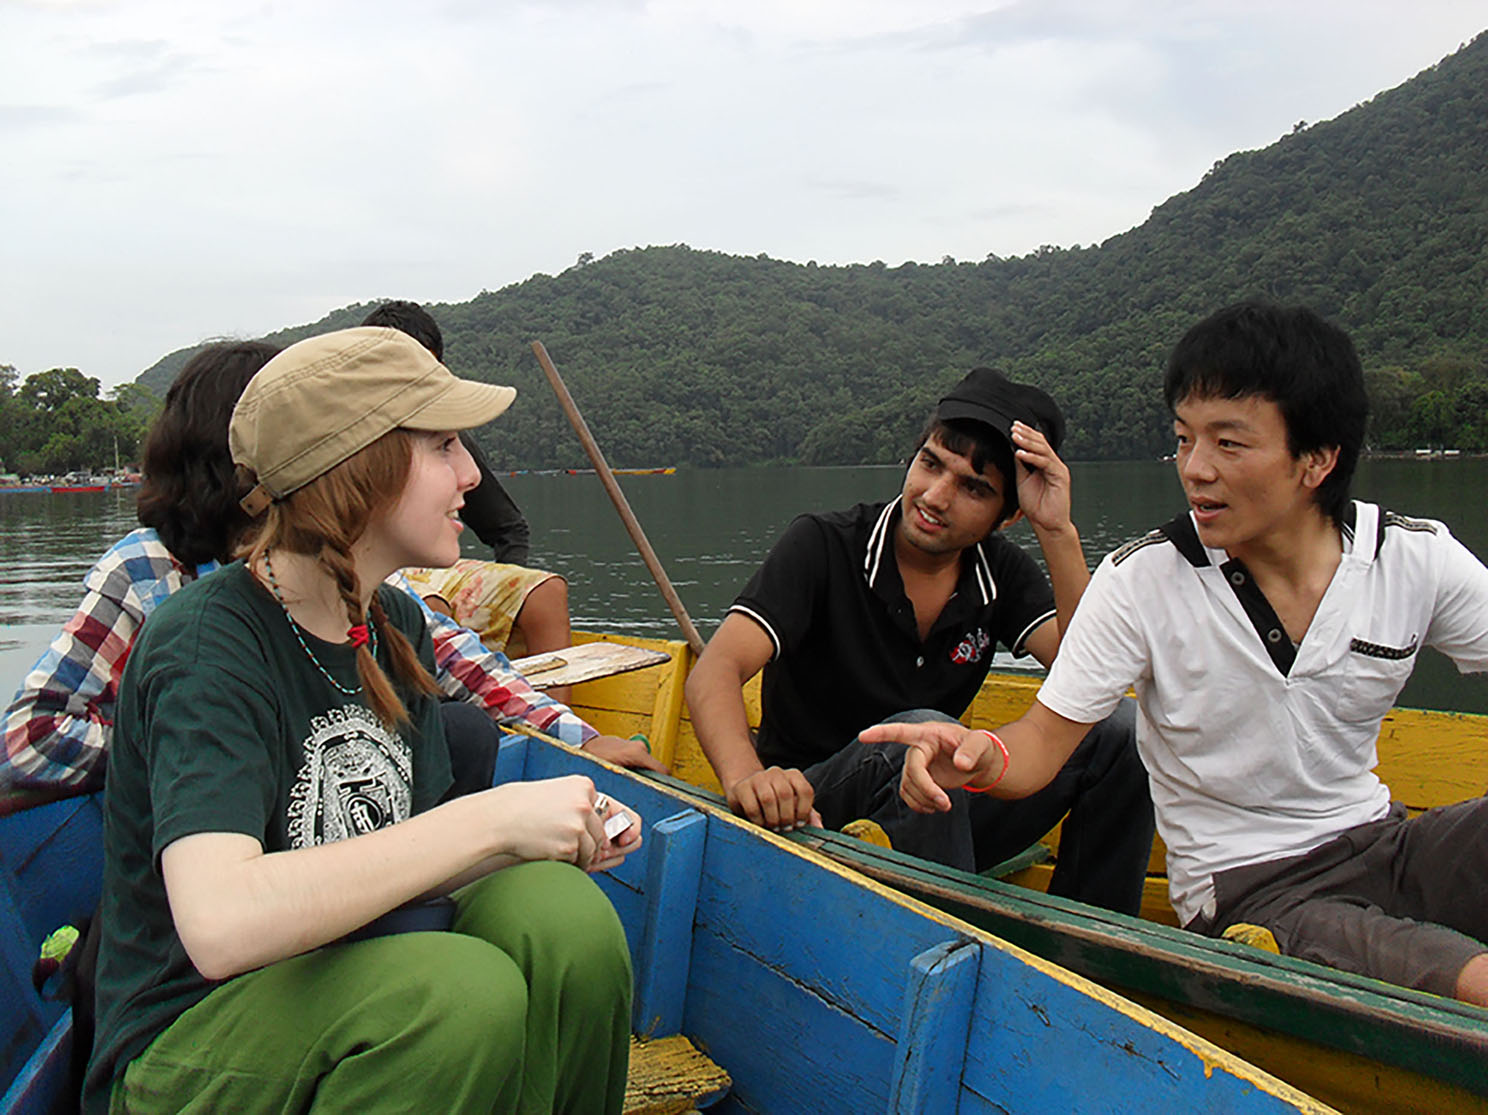 Slater Jewell-Kemker on a boat with others.